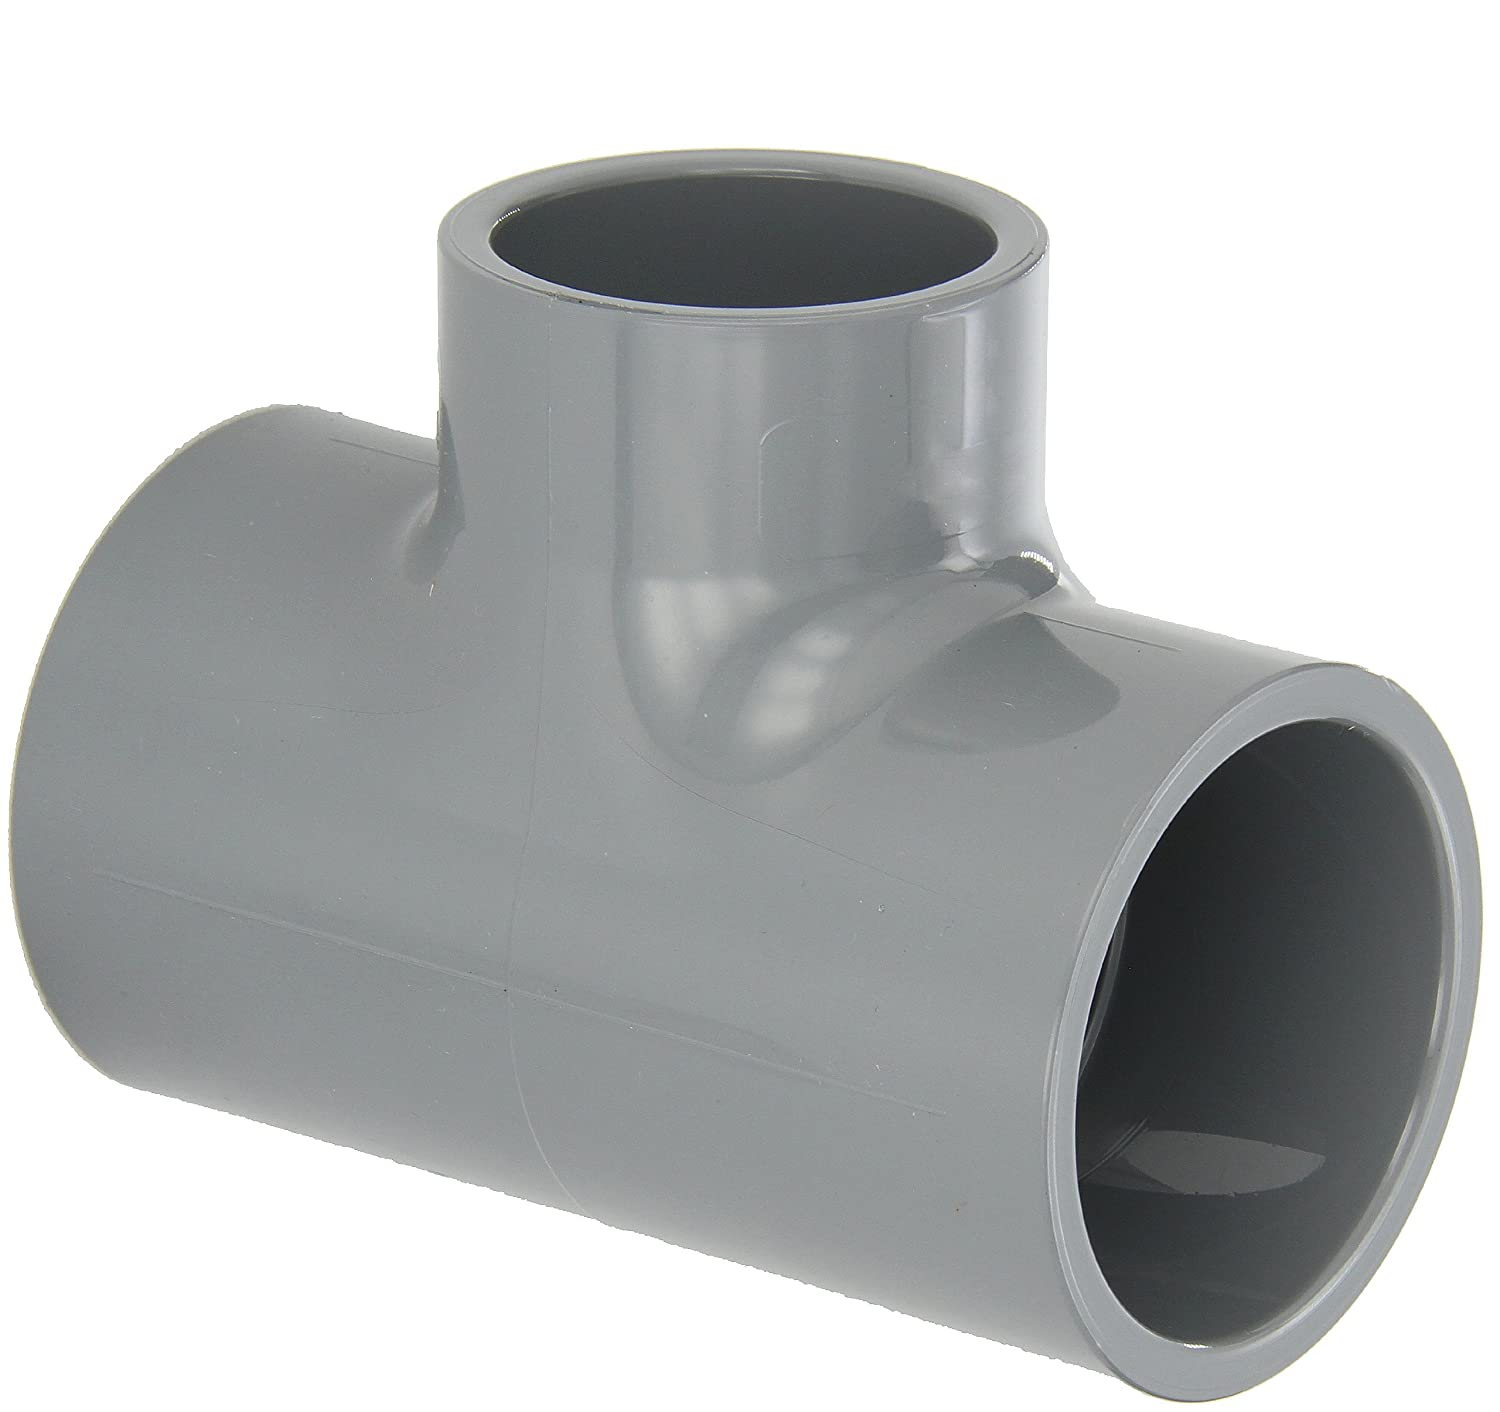 2 x 2 x 1-1//2 Slip Socket Gray Reducing Tee GF Piping Systems CPVC Pipe Fitting Schedule 80